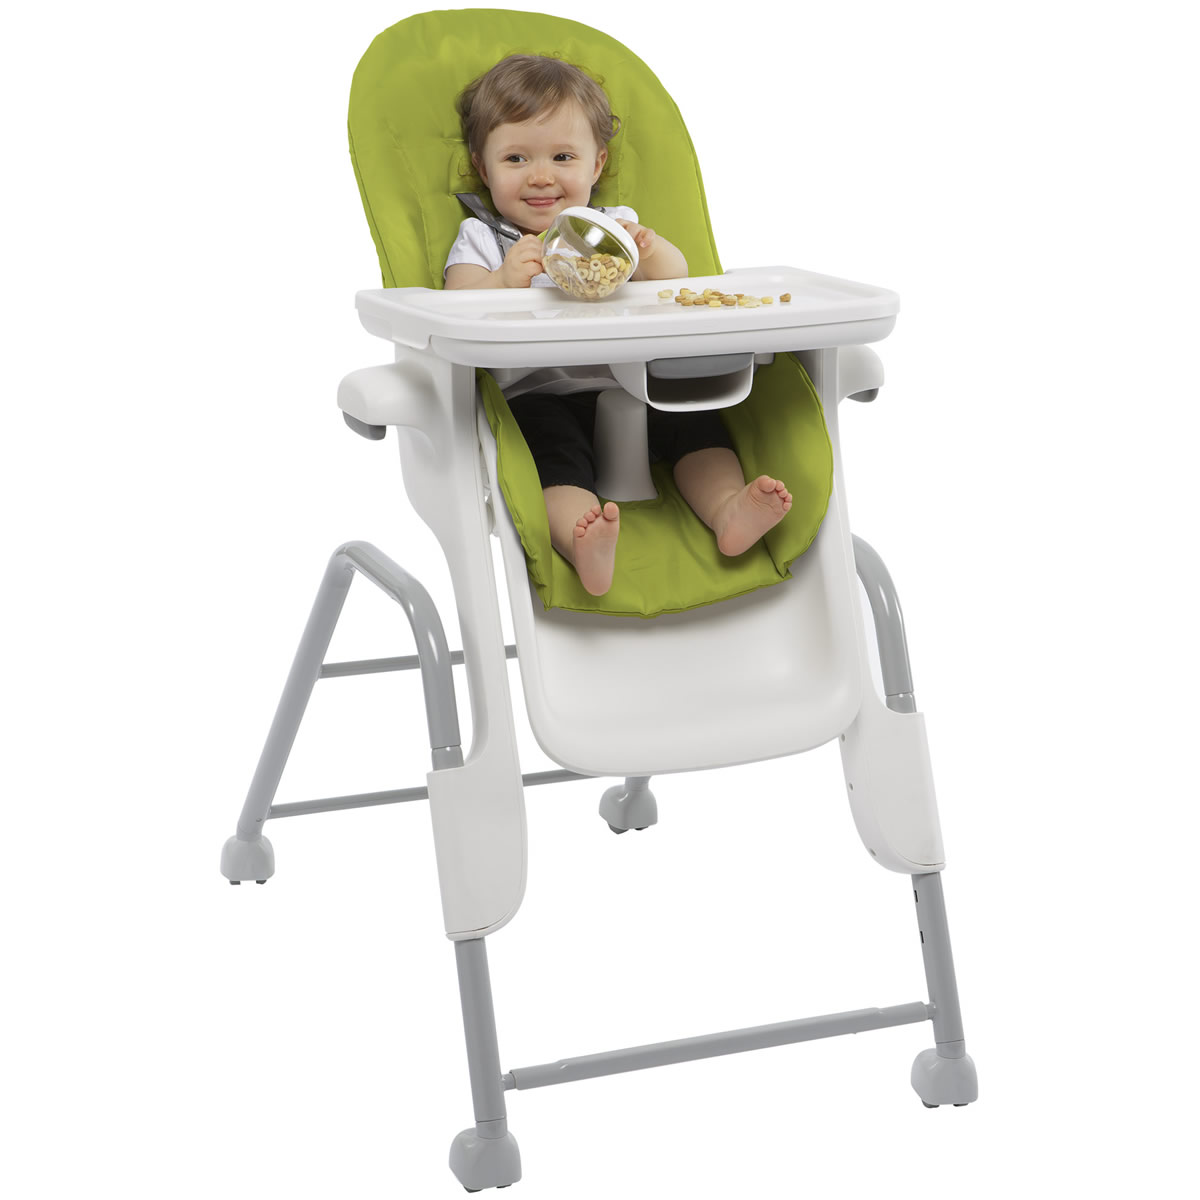 Baby Food Chair Review Oxo Seedling High Chair